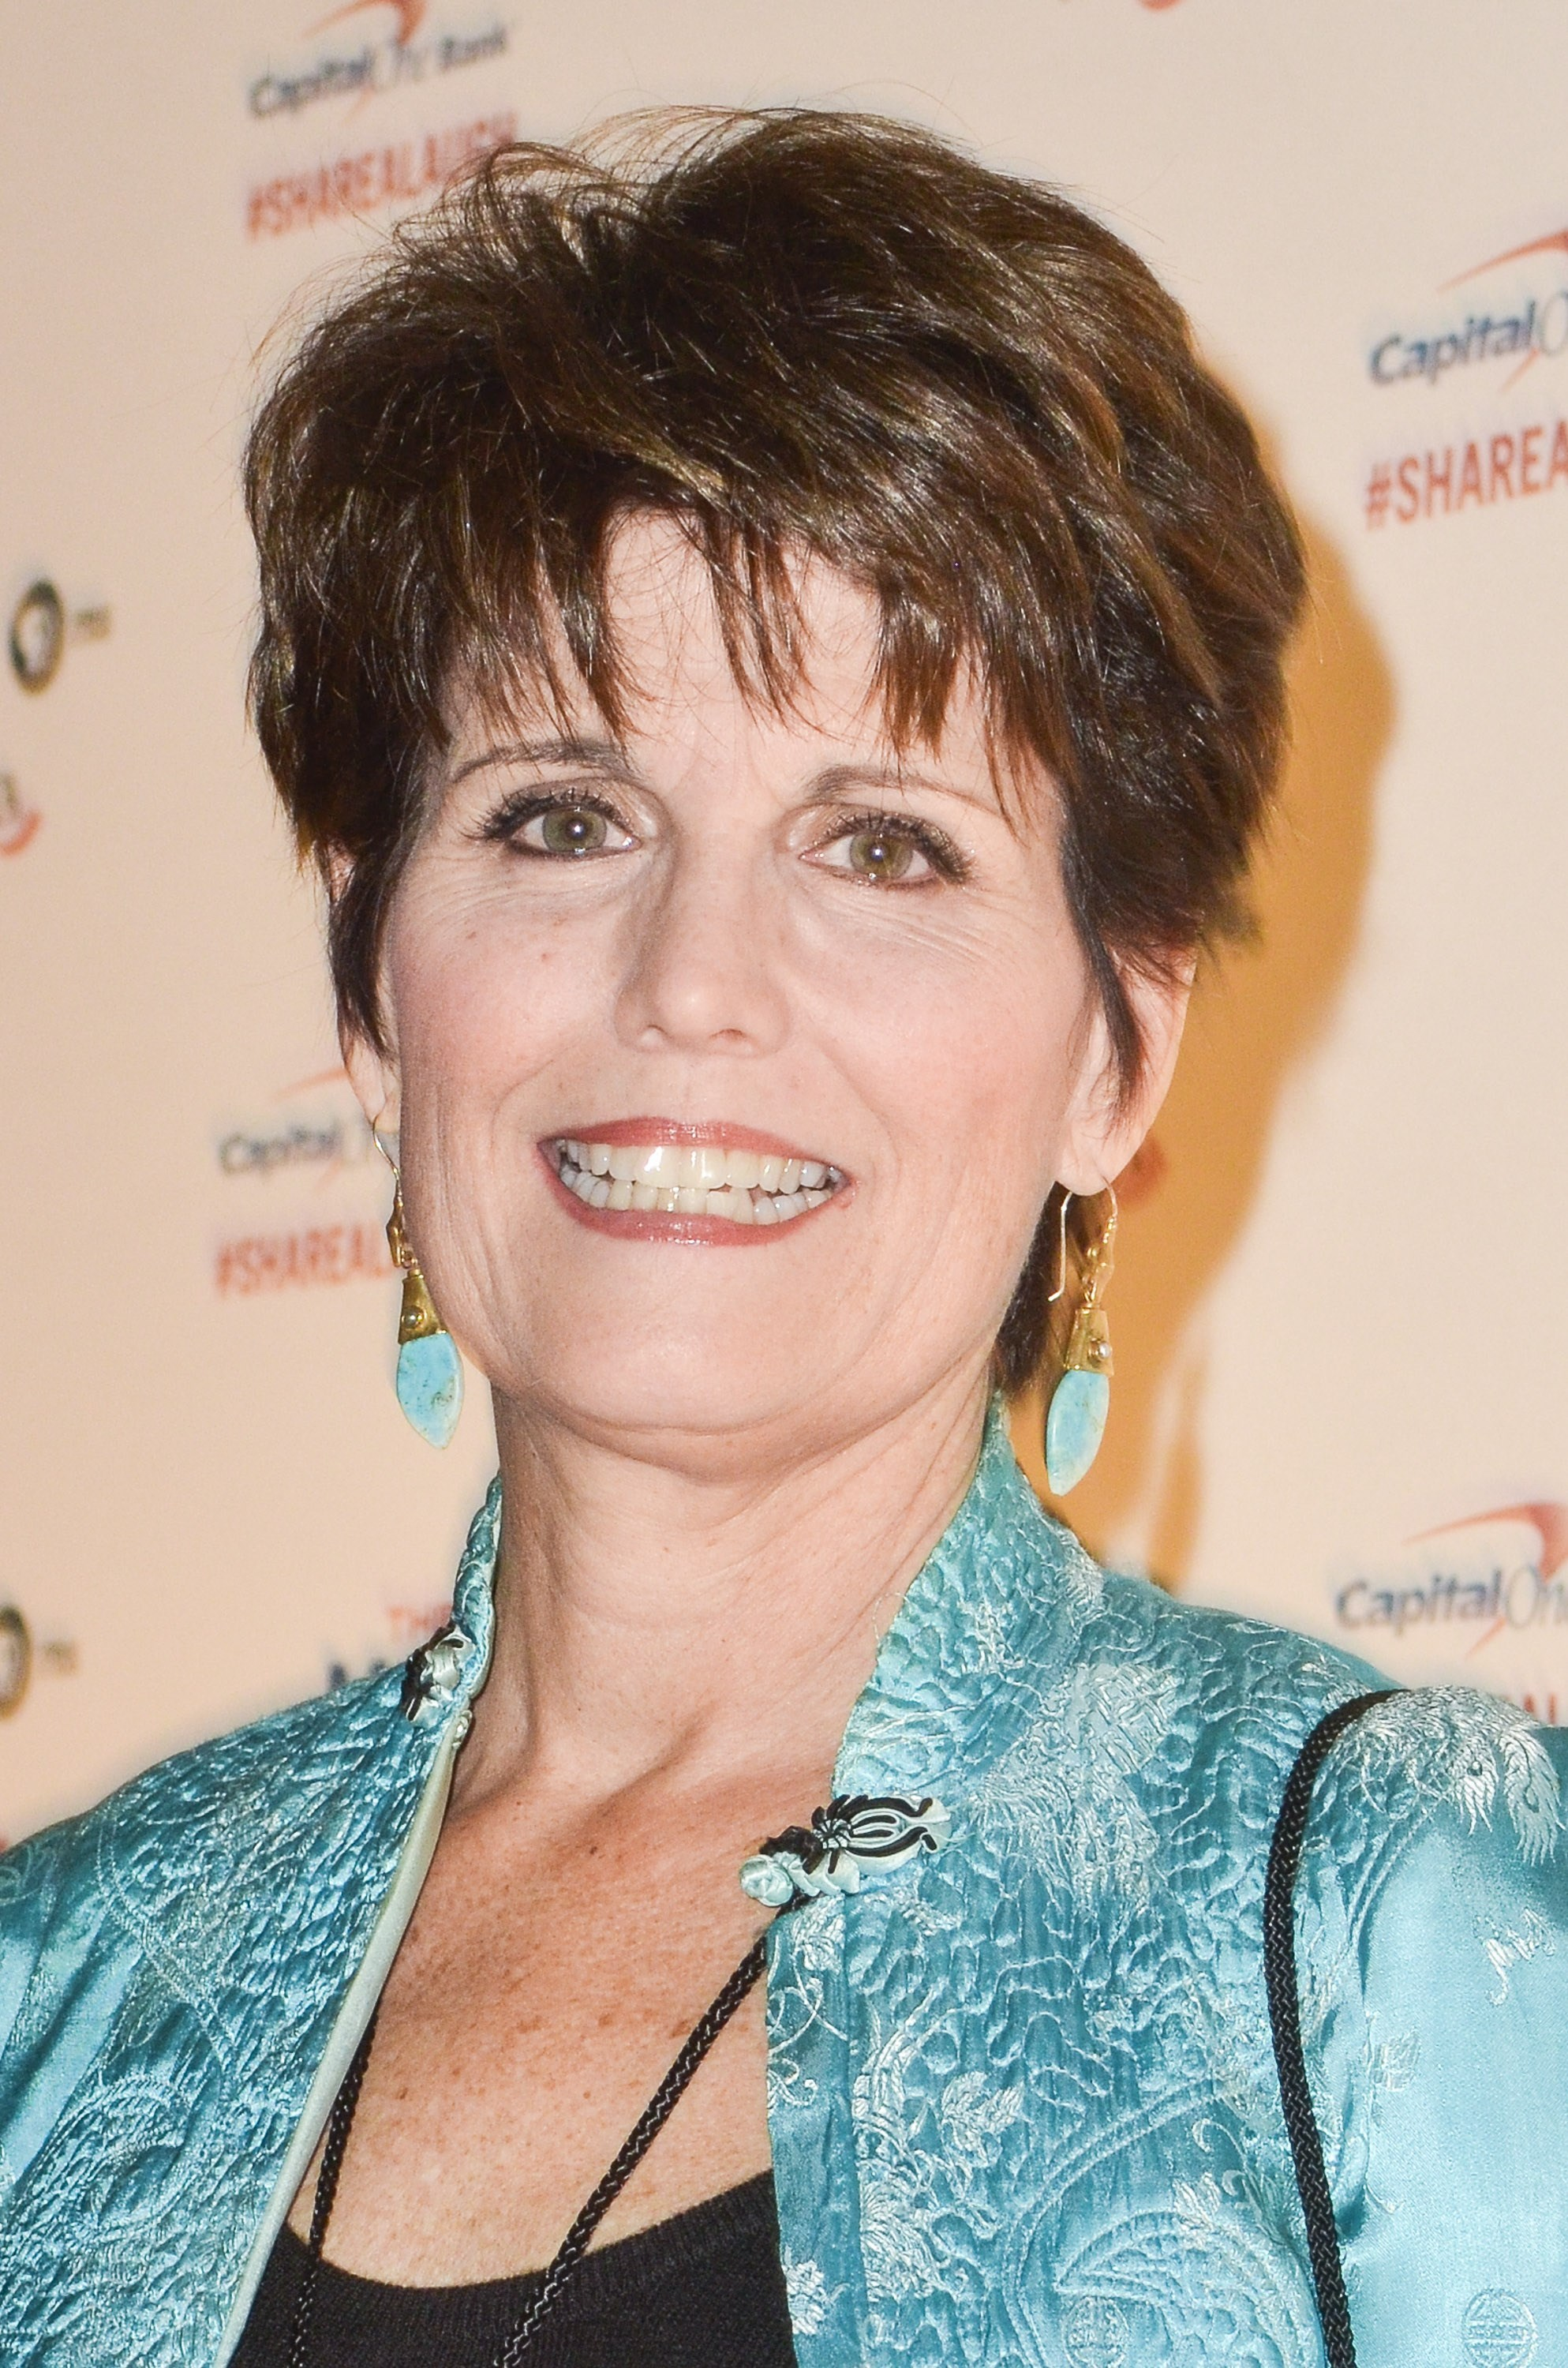 Lucie Arnaz naked (42 photo), Topless, Paparazzi, Selfie, cameltoe 2020